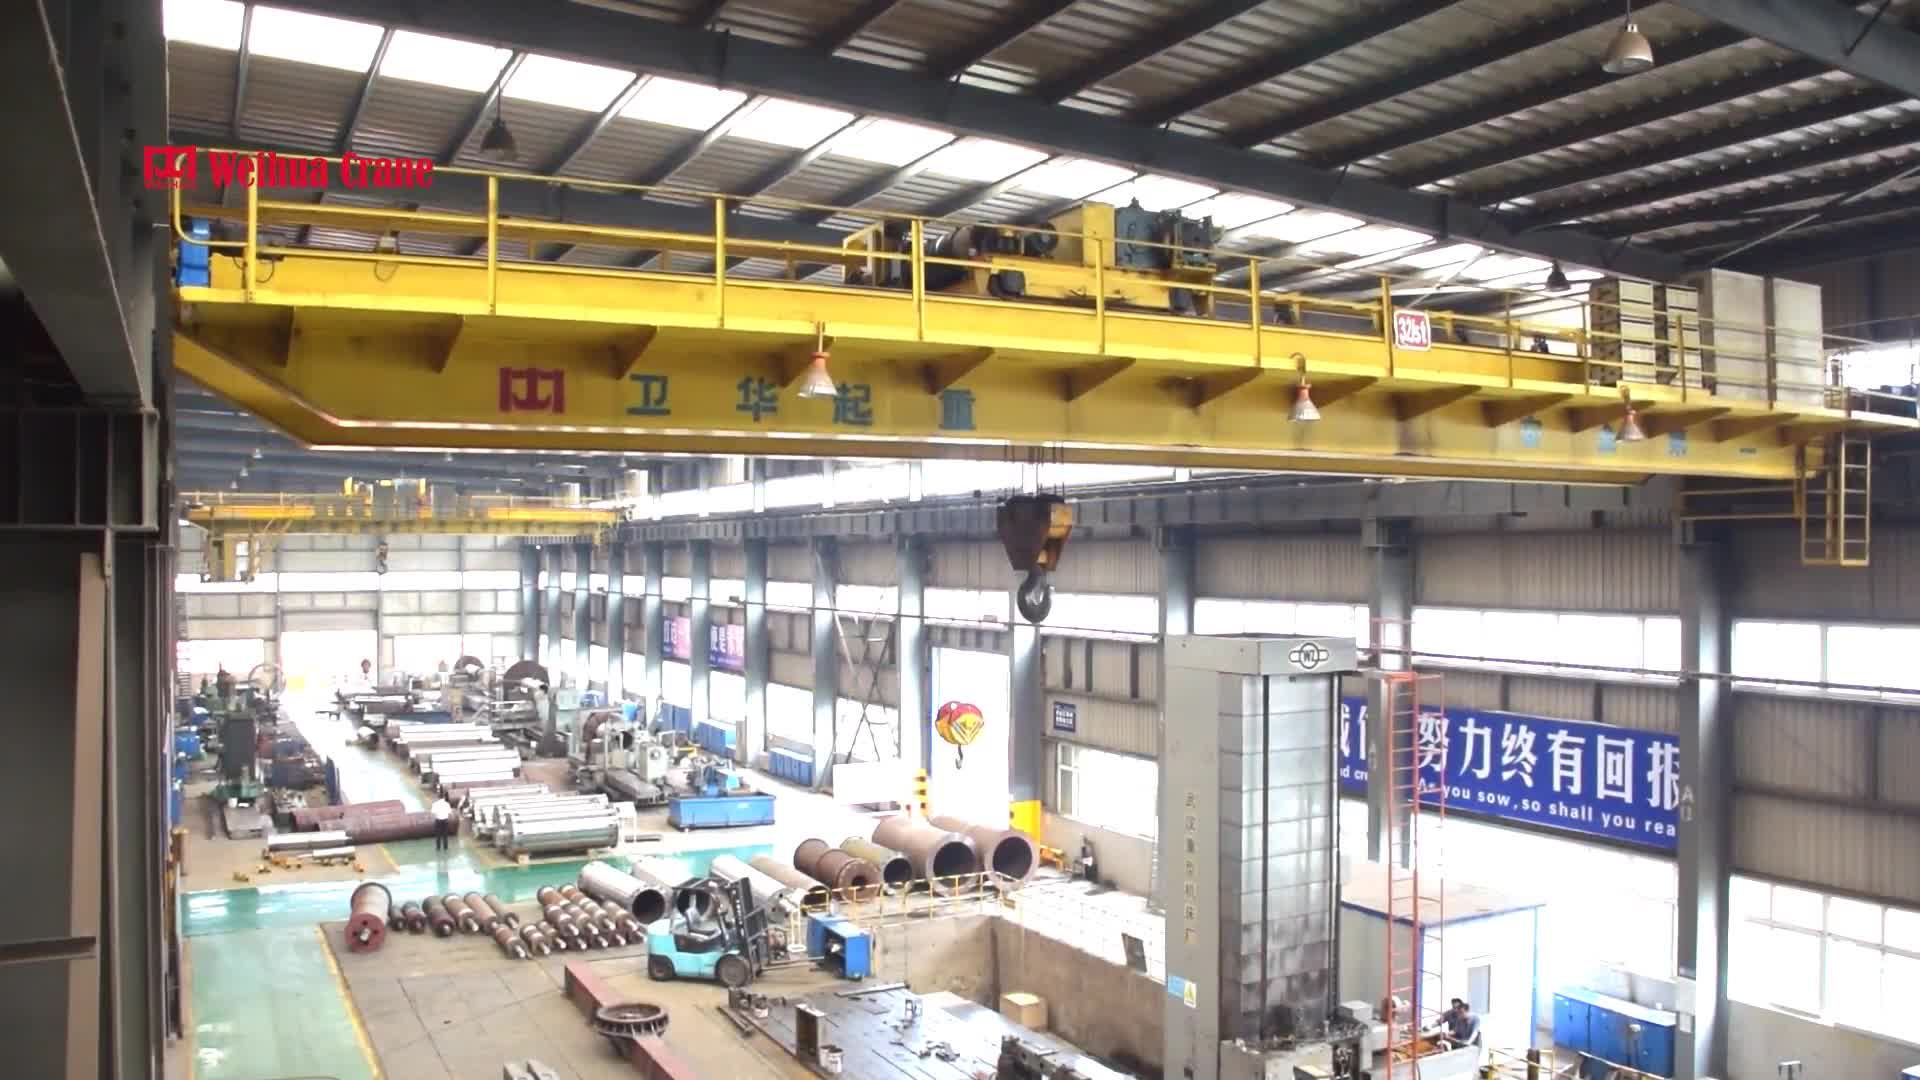 Heavy Duty Hoist Trolley 50 tons Motor Drive Double Beam Explosion Proof Overhead Traveling Crane Lifting Height 20m Price